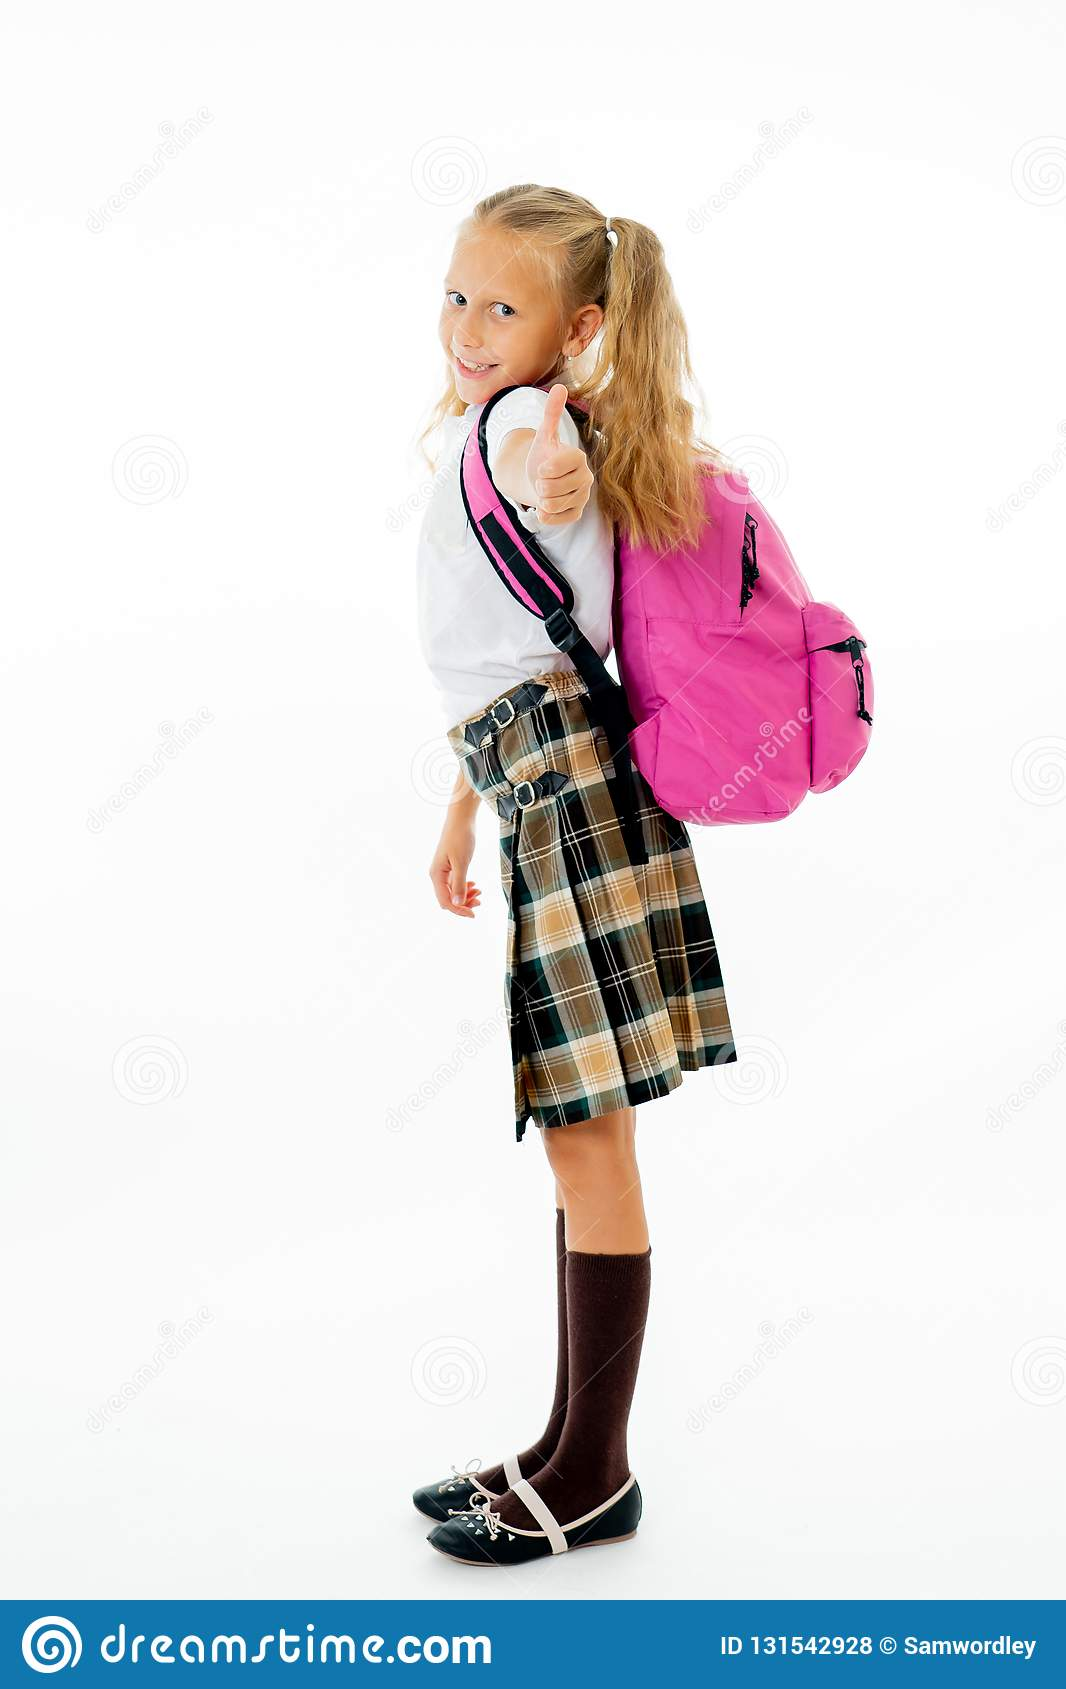 Pretty cute blonde hair girl with a pink schoolbag looking at camera showing thumb up gesture happy to go to school isolated on